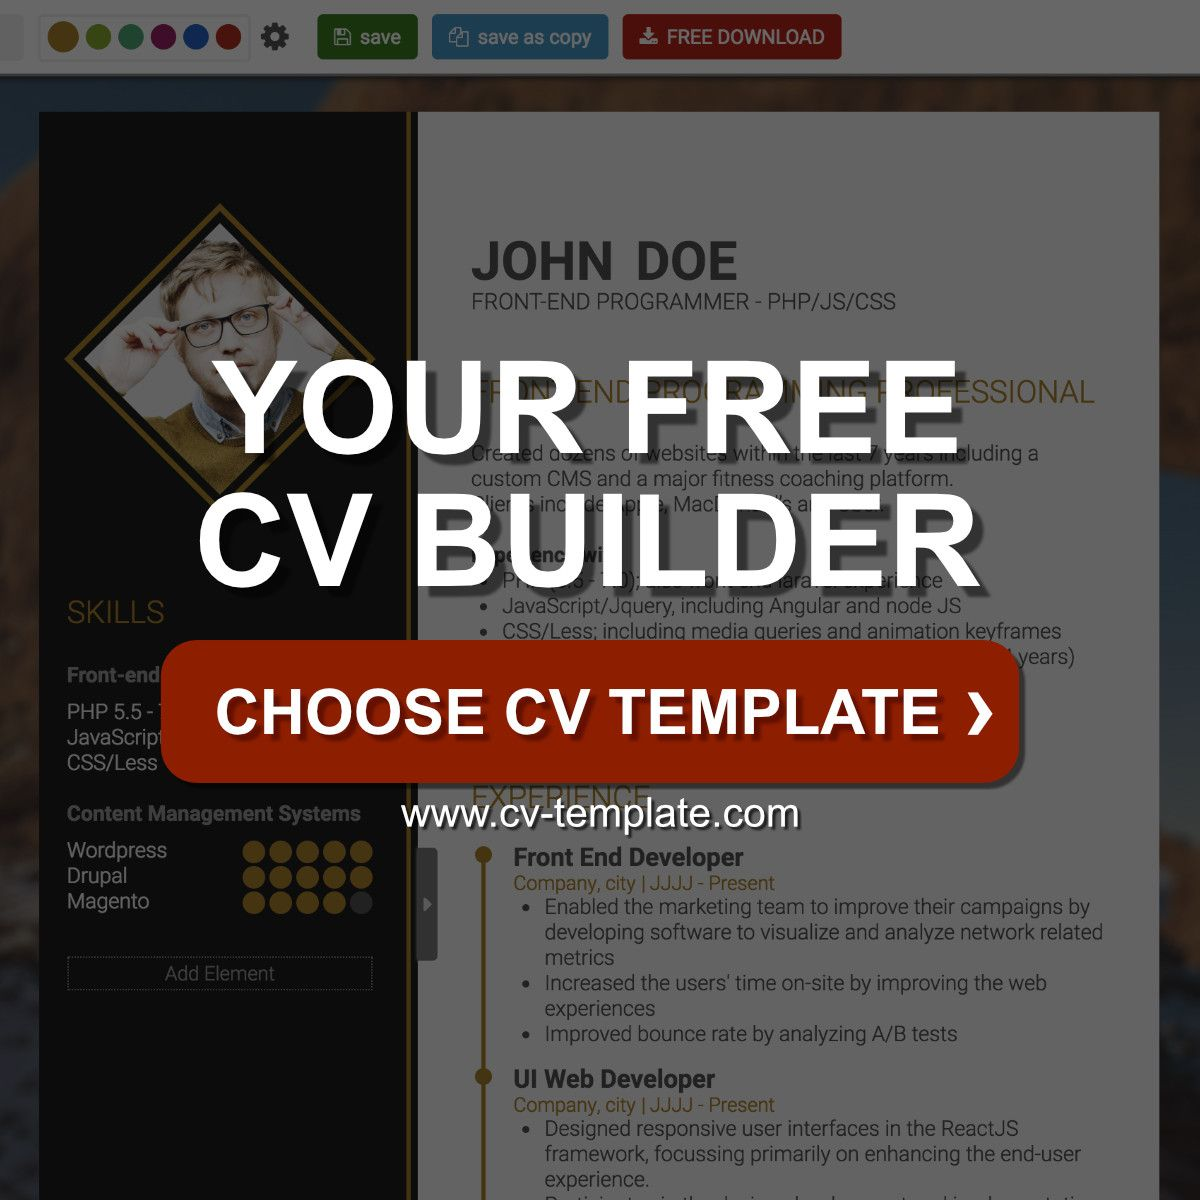 Are you looking for the perfect CV? Give yourself a